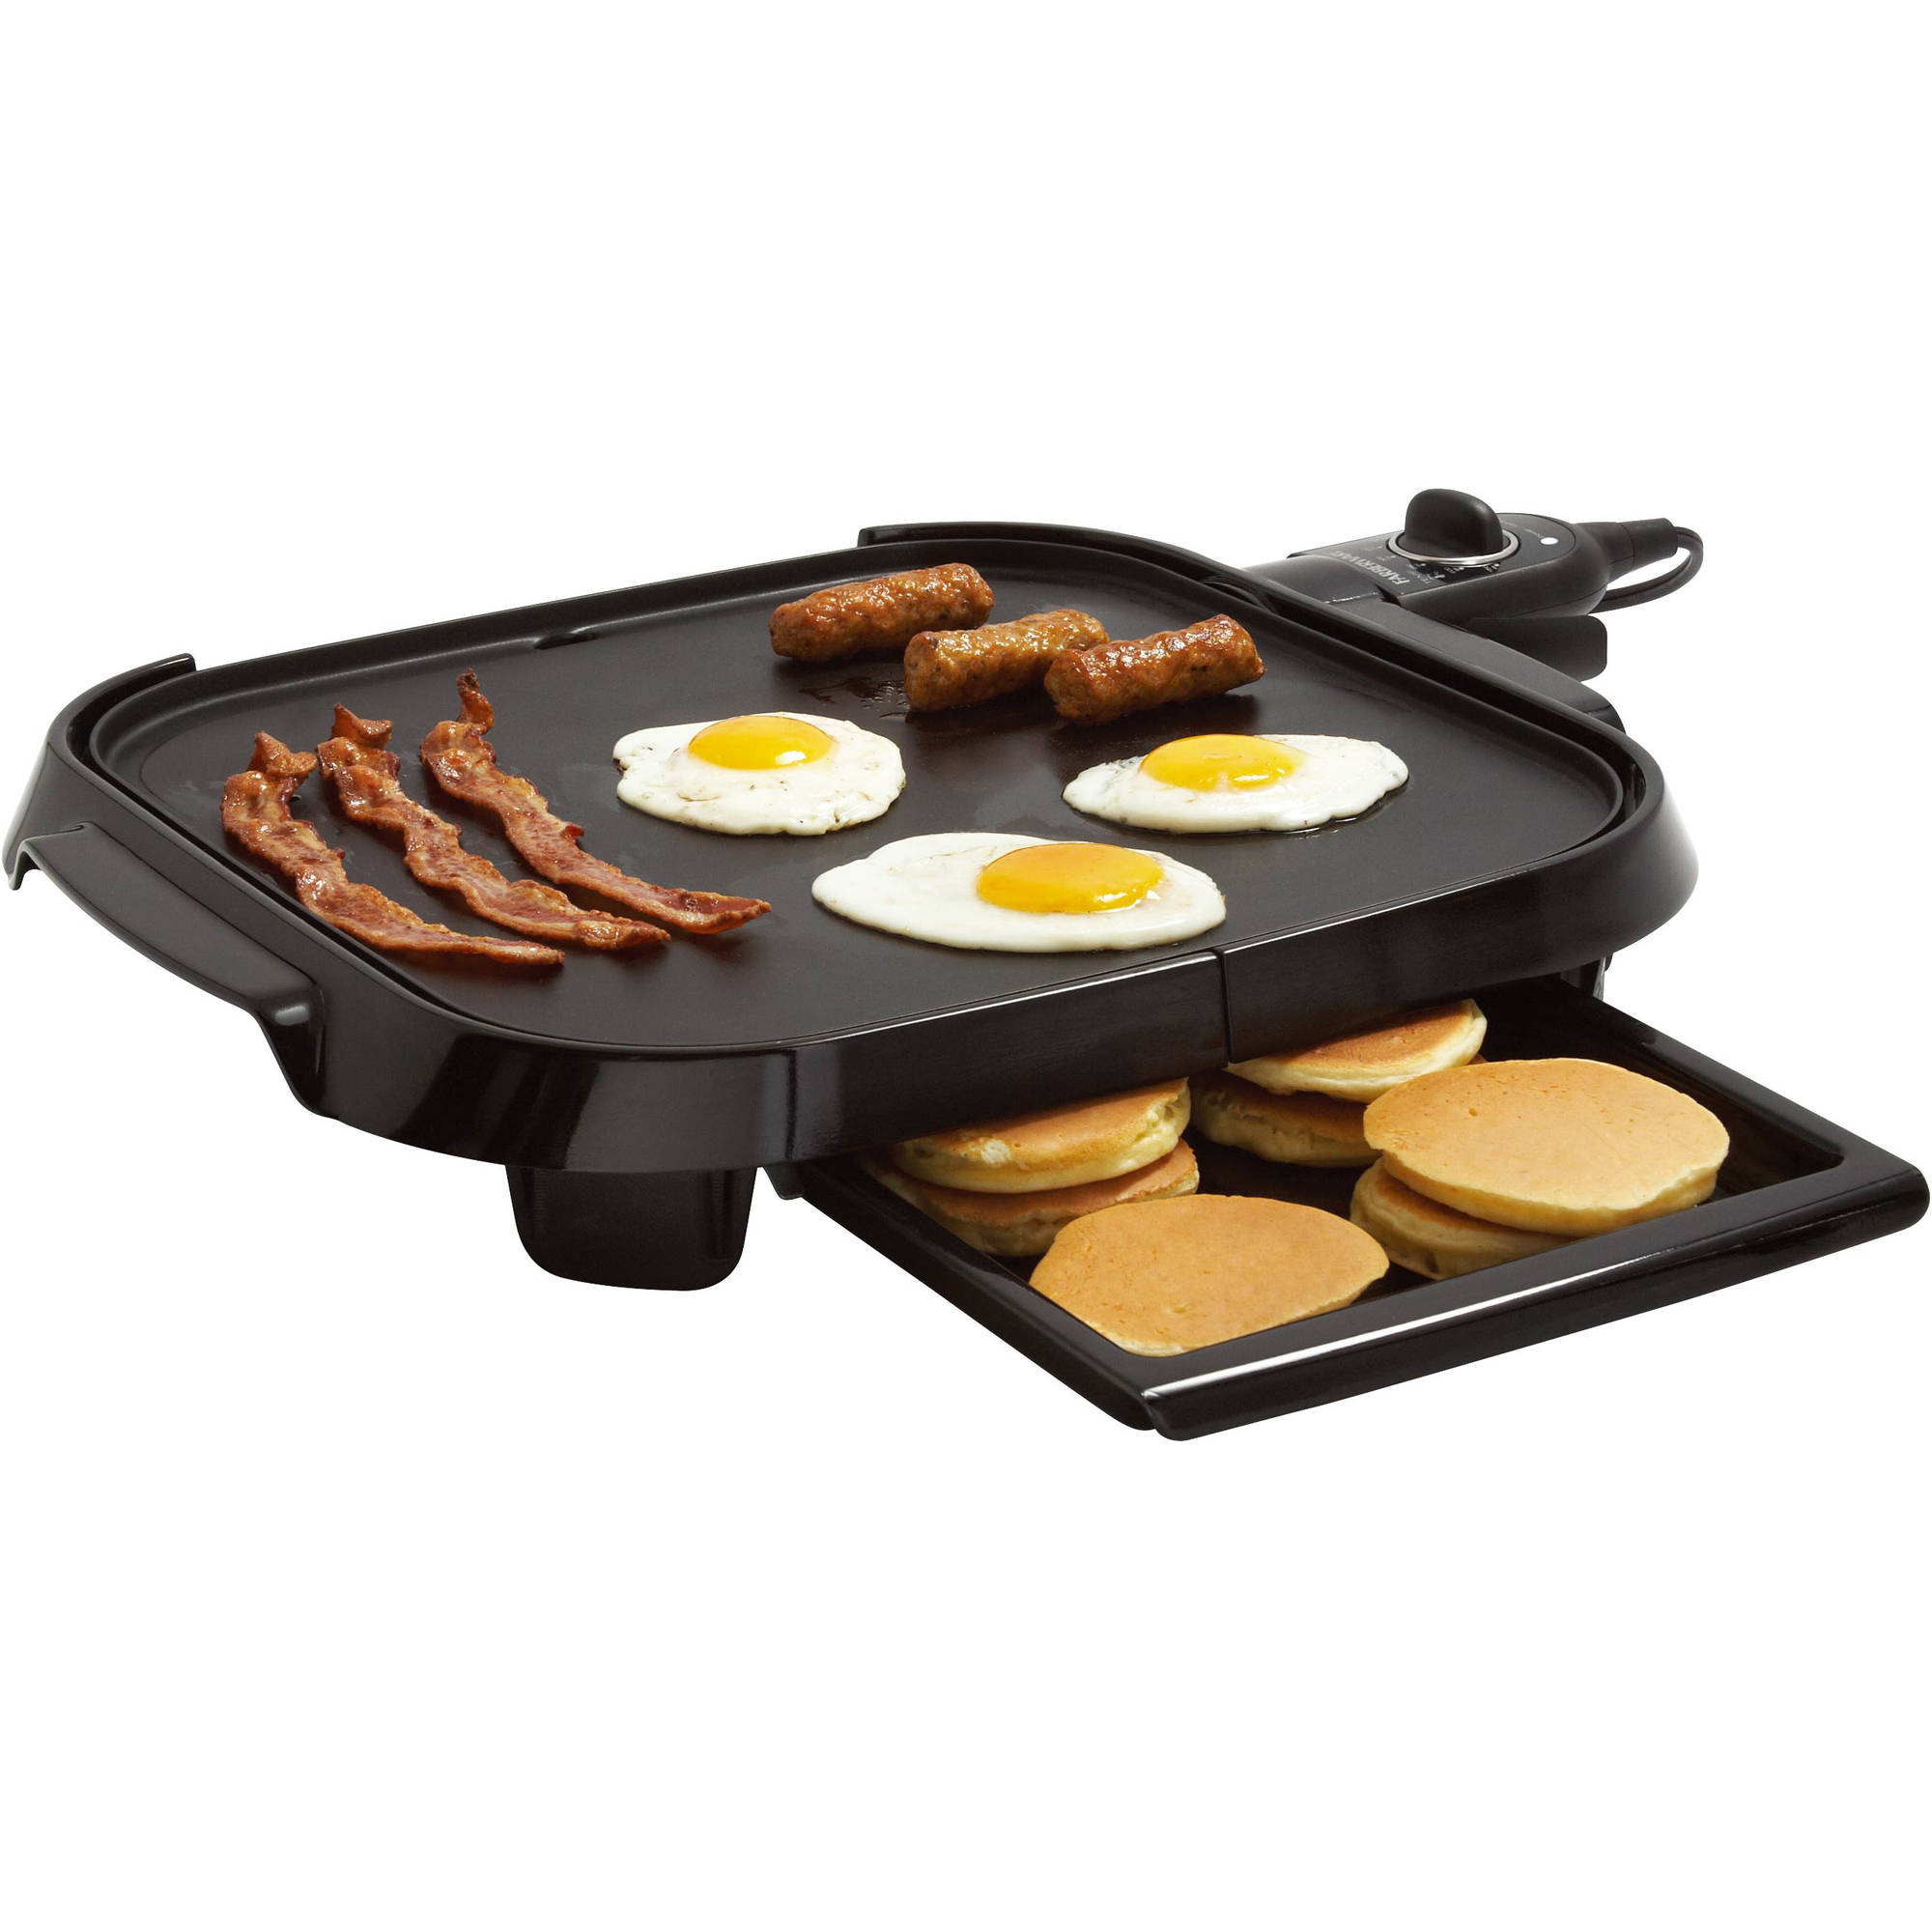 Farberware Royalty 14 Quot X 14 Quot Family Size Black Griddle